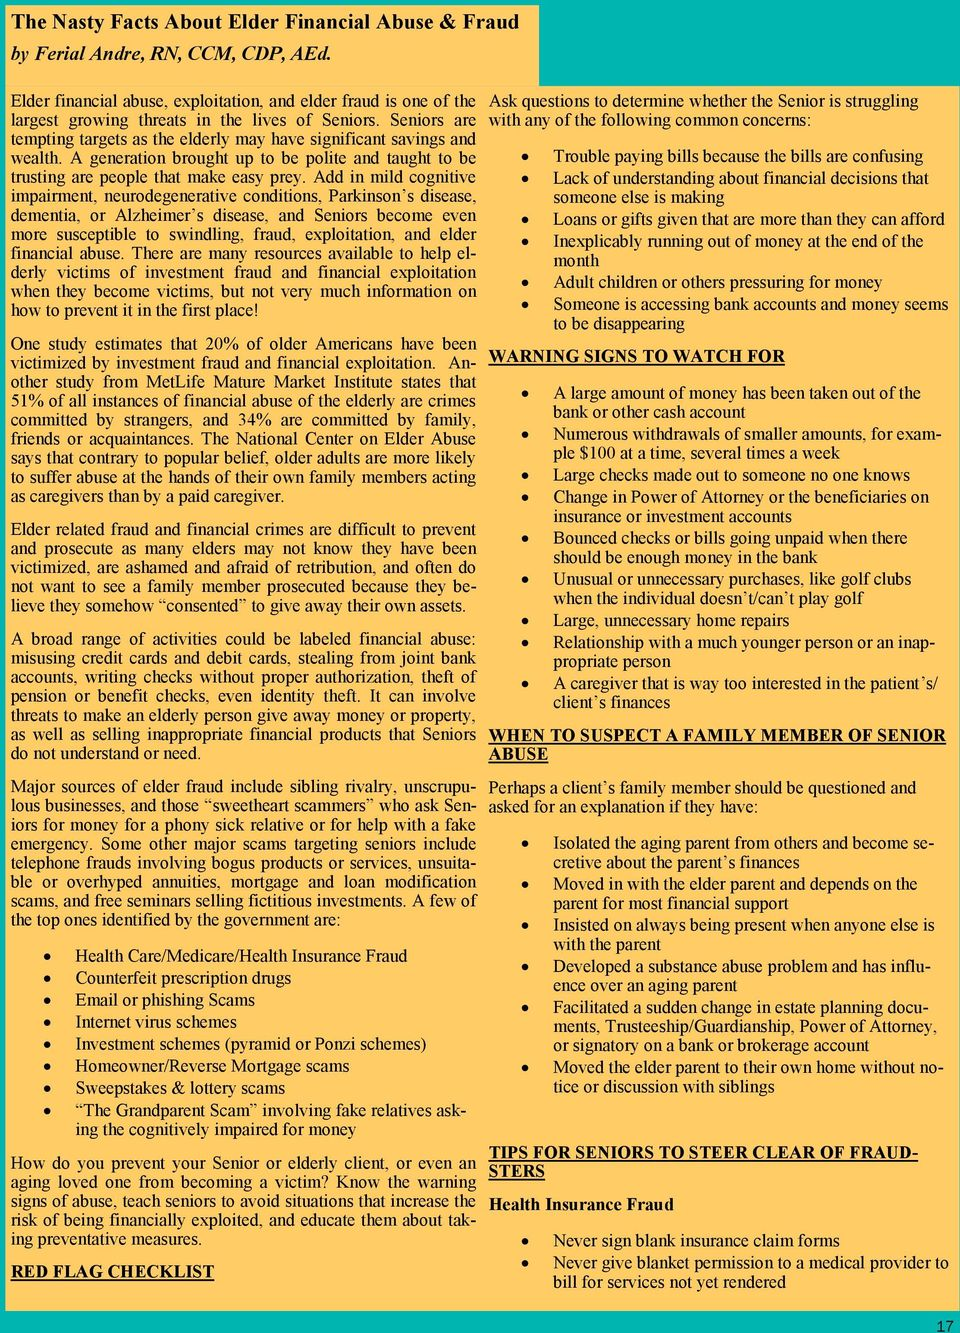 A generation brought up to be polite and taught to be trusting are people that make easy prey.